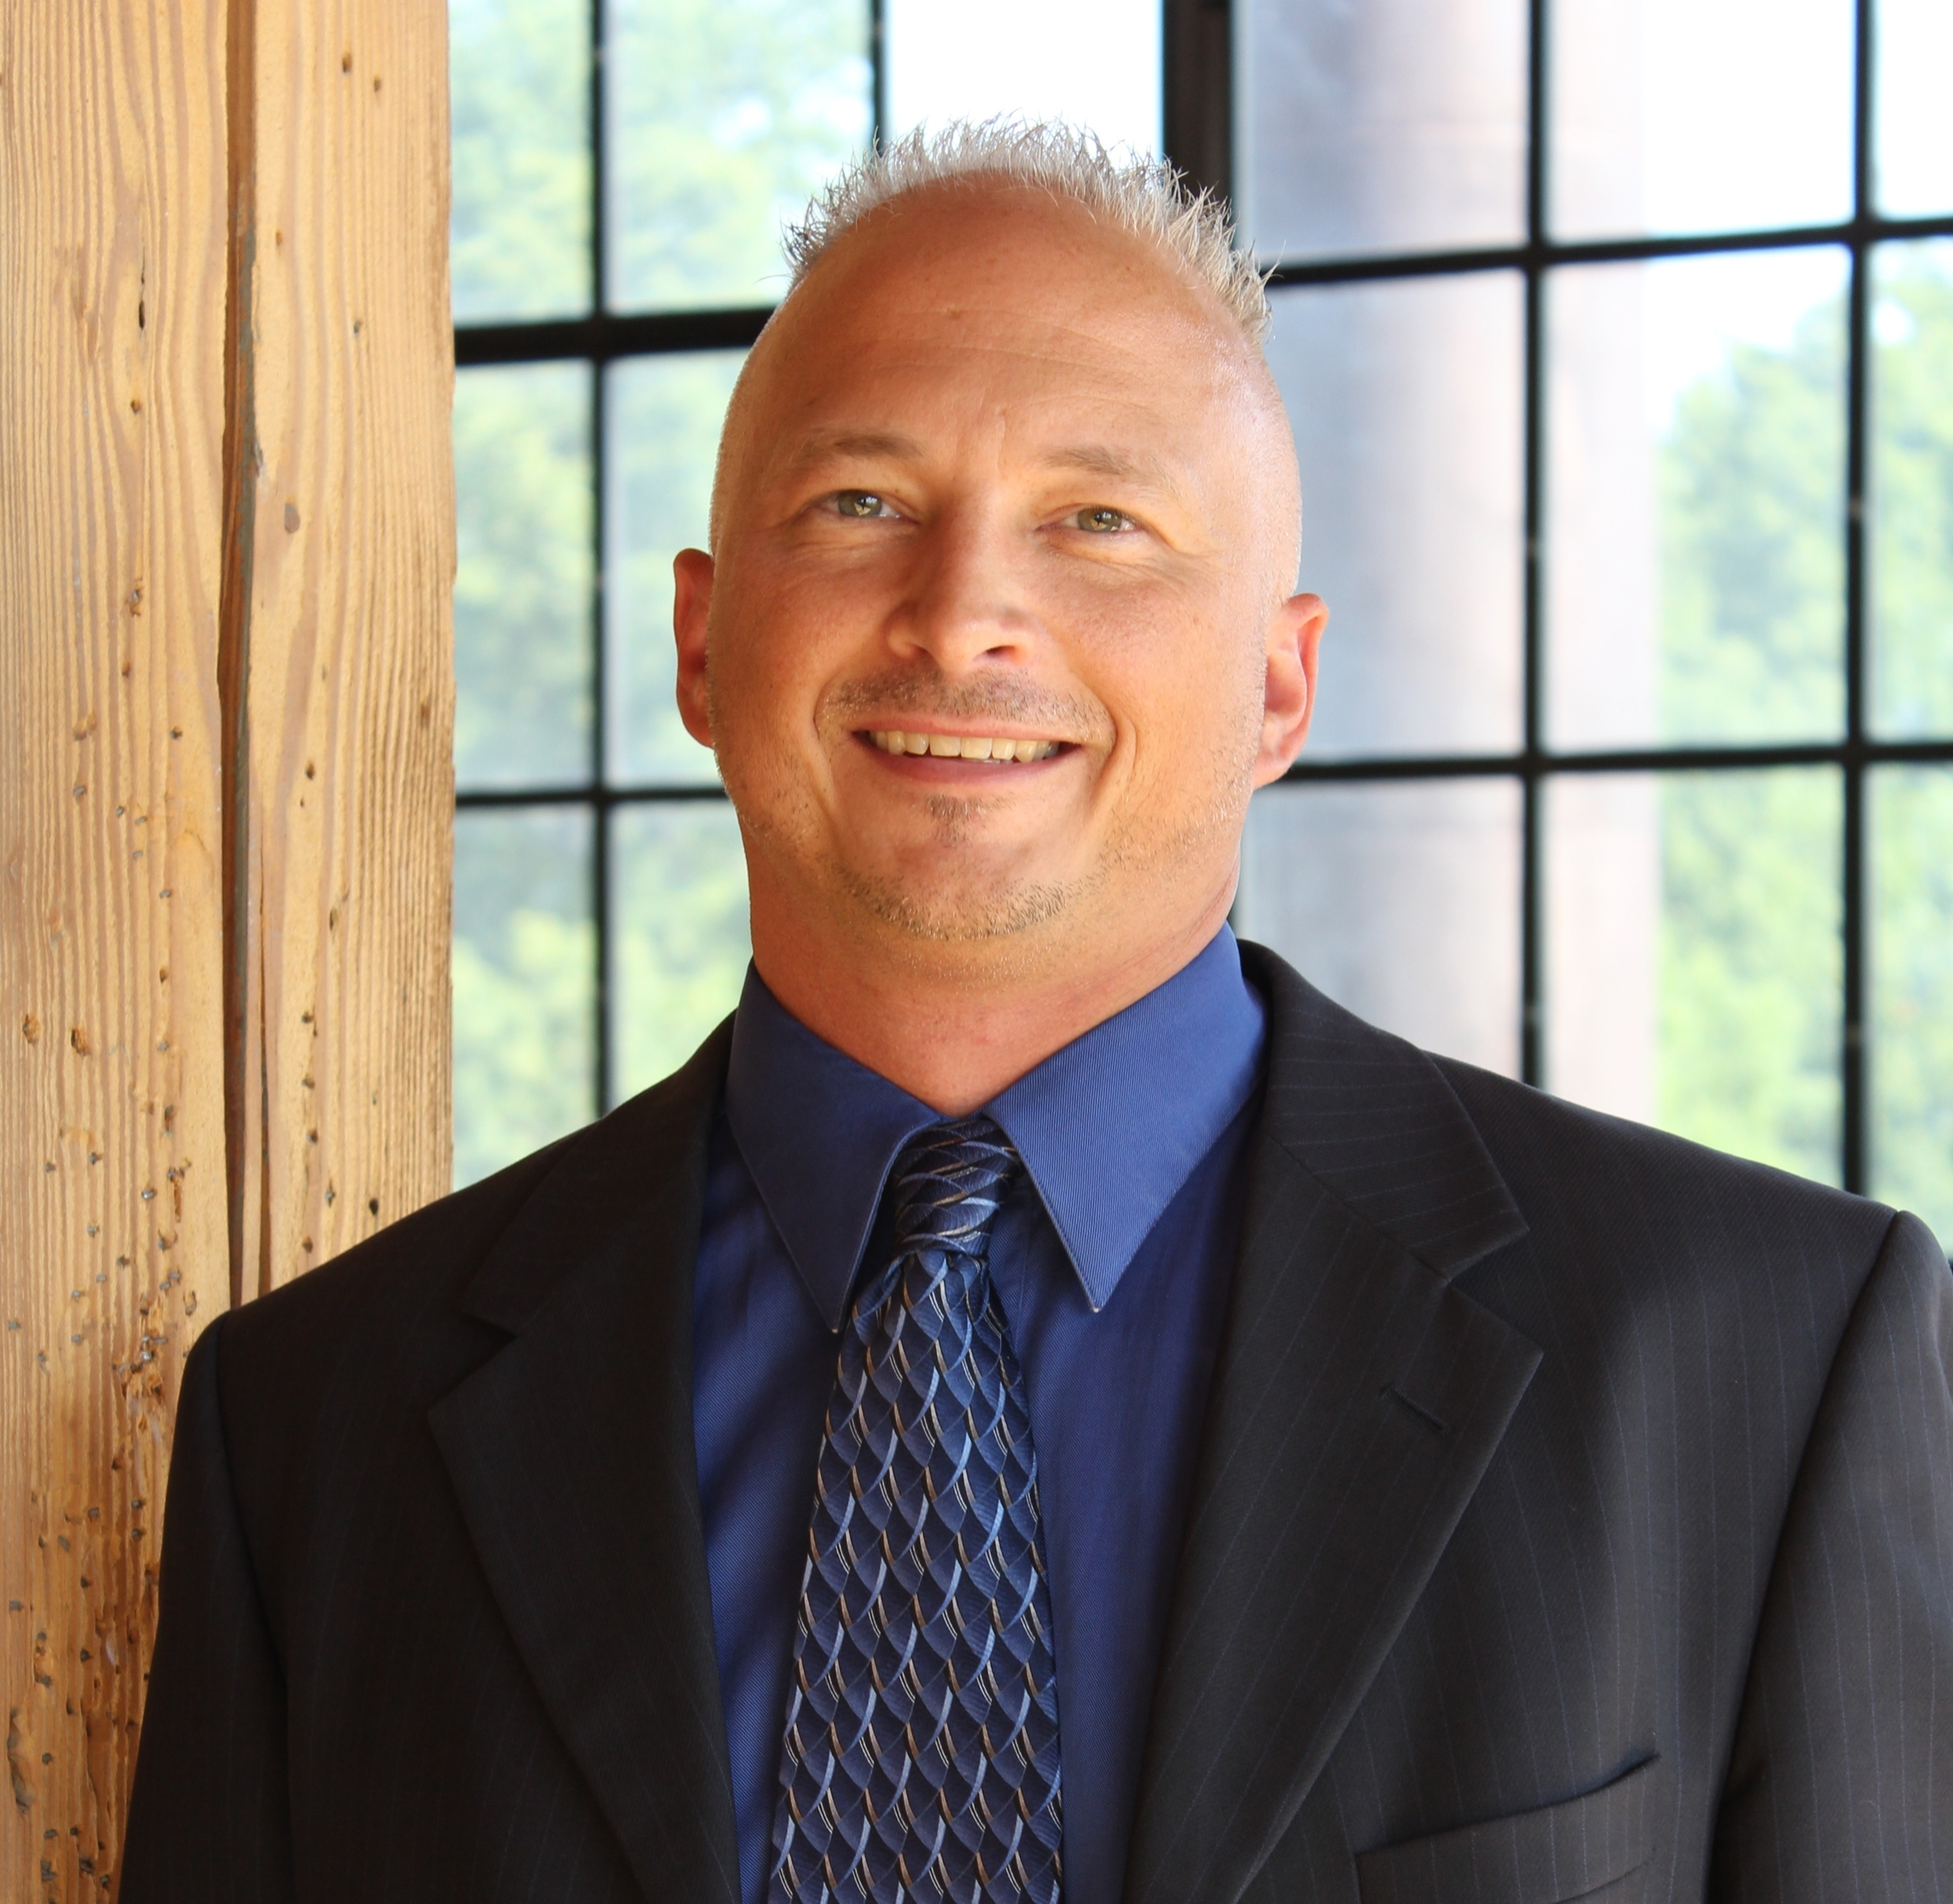 Steve Tyminski - Account Manager